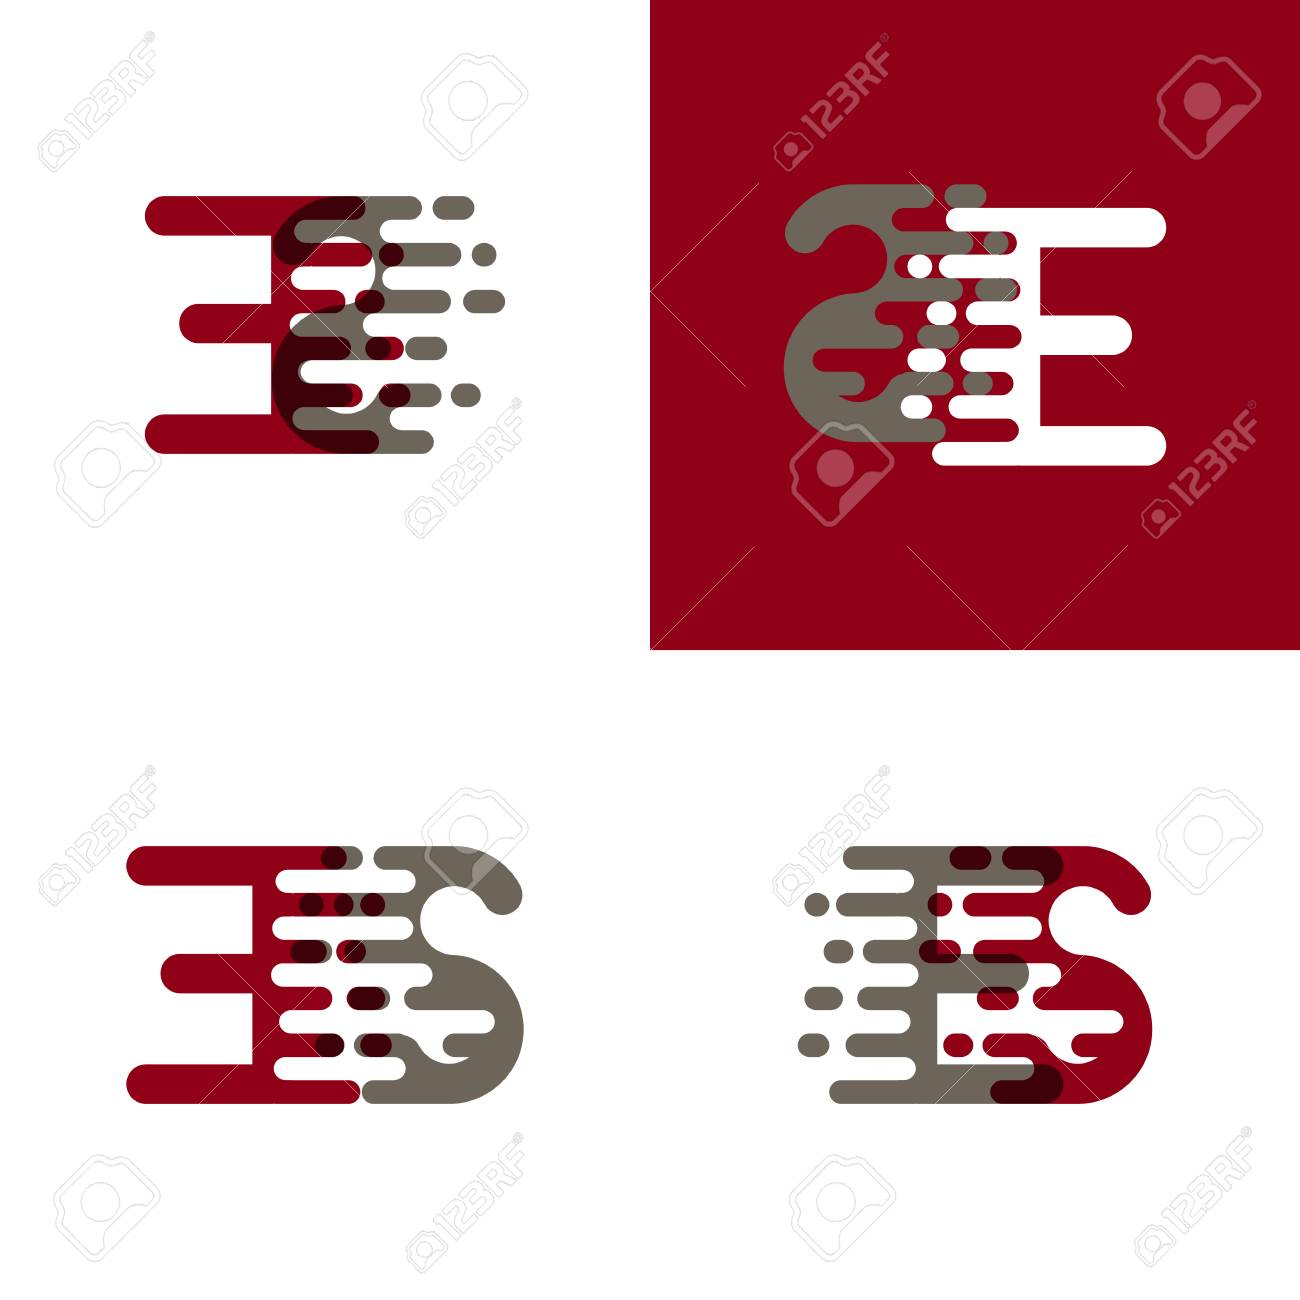 ES letters logo with accent speed in drak red and gray - 99030083